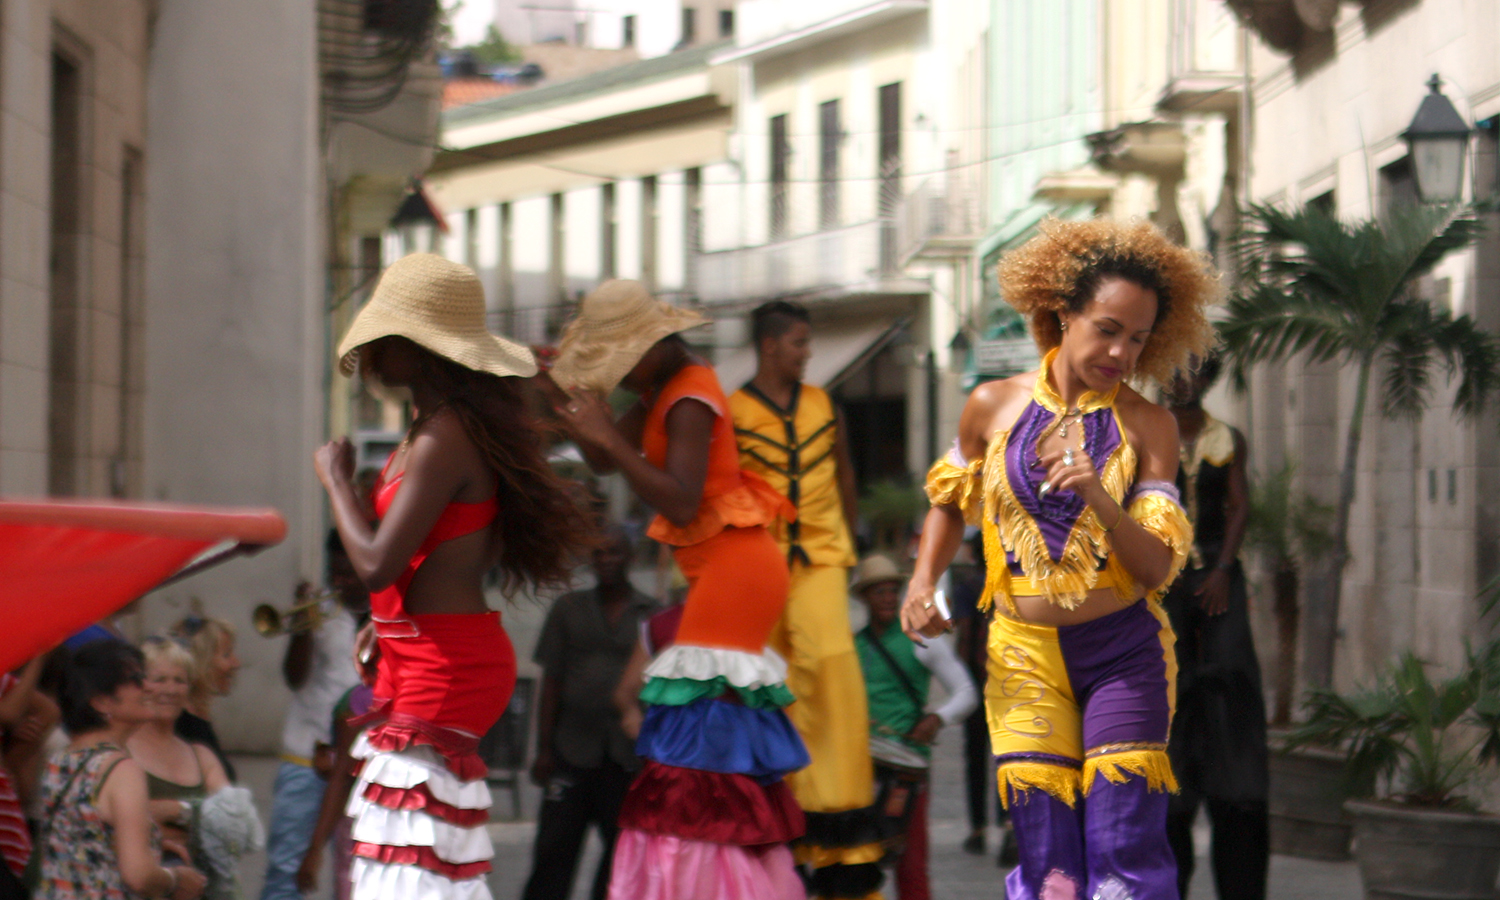 Grant Emerson '20 captures street performers dancing on stilts in Old Havana.